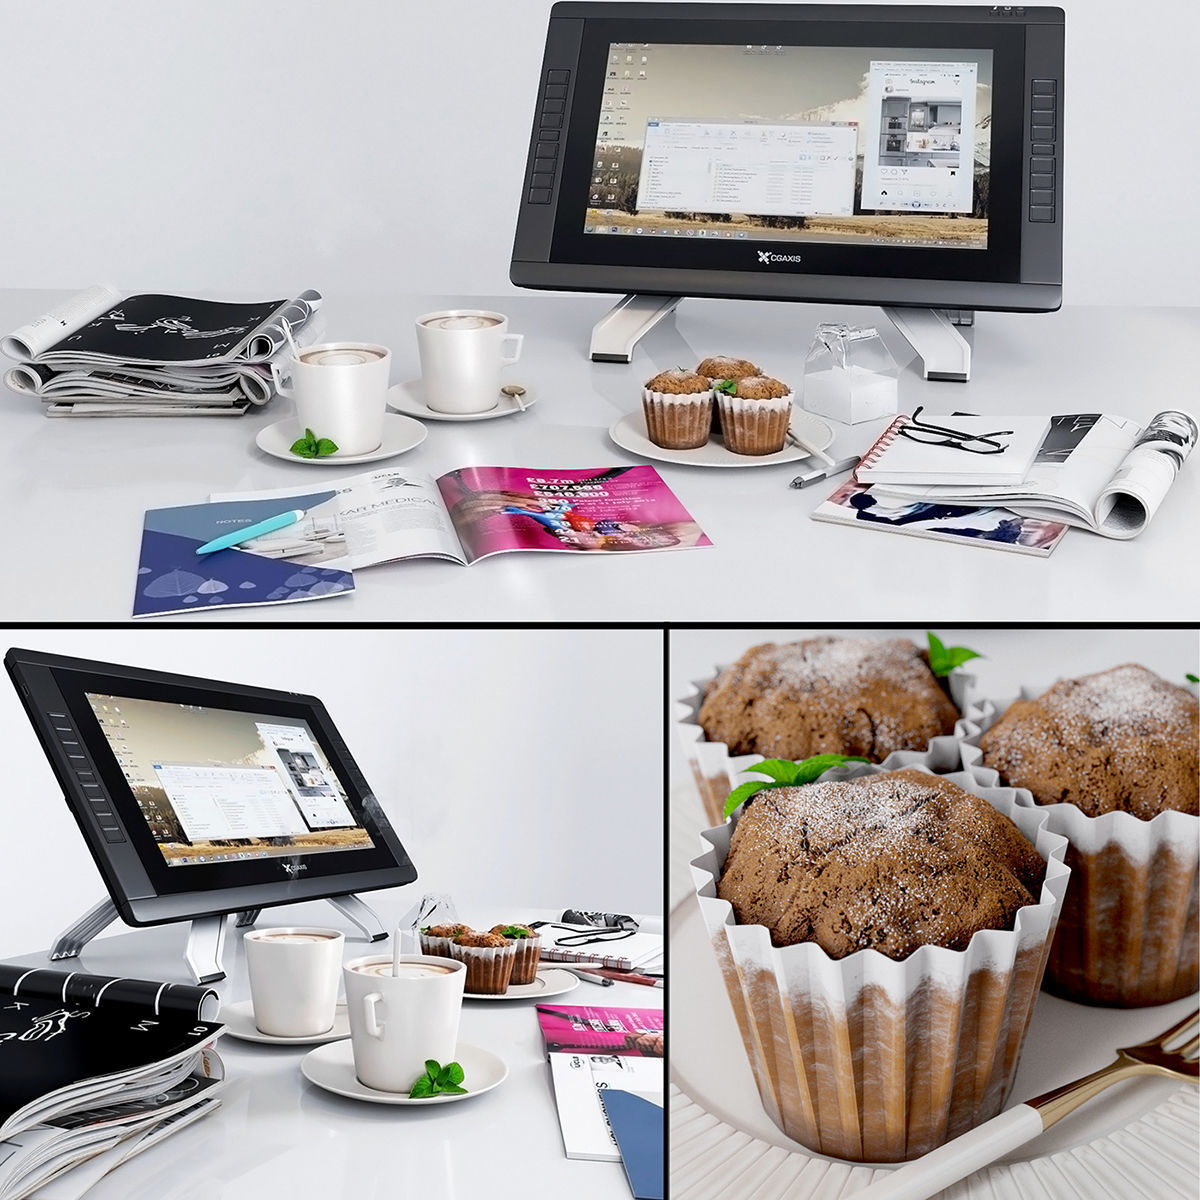 Journals Decorative Coffee Cupcakes Tablet Notebook